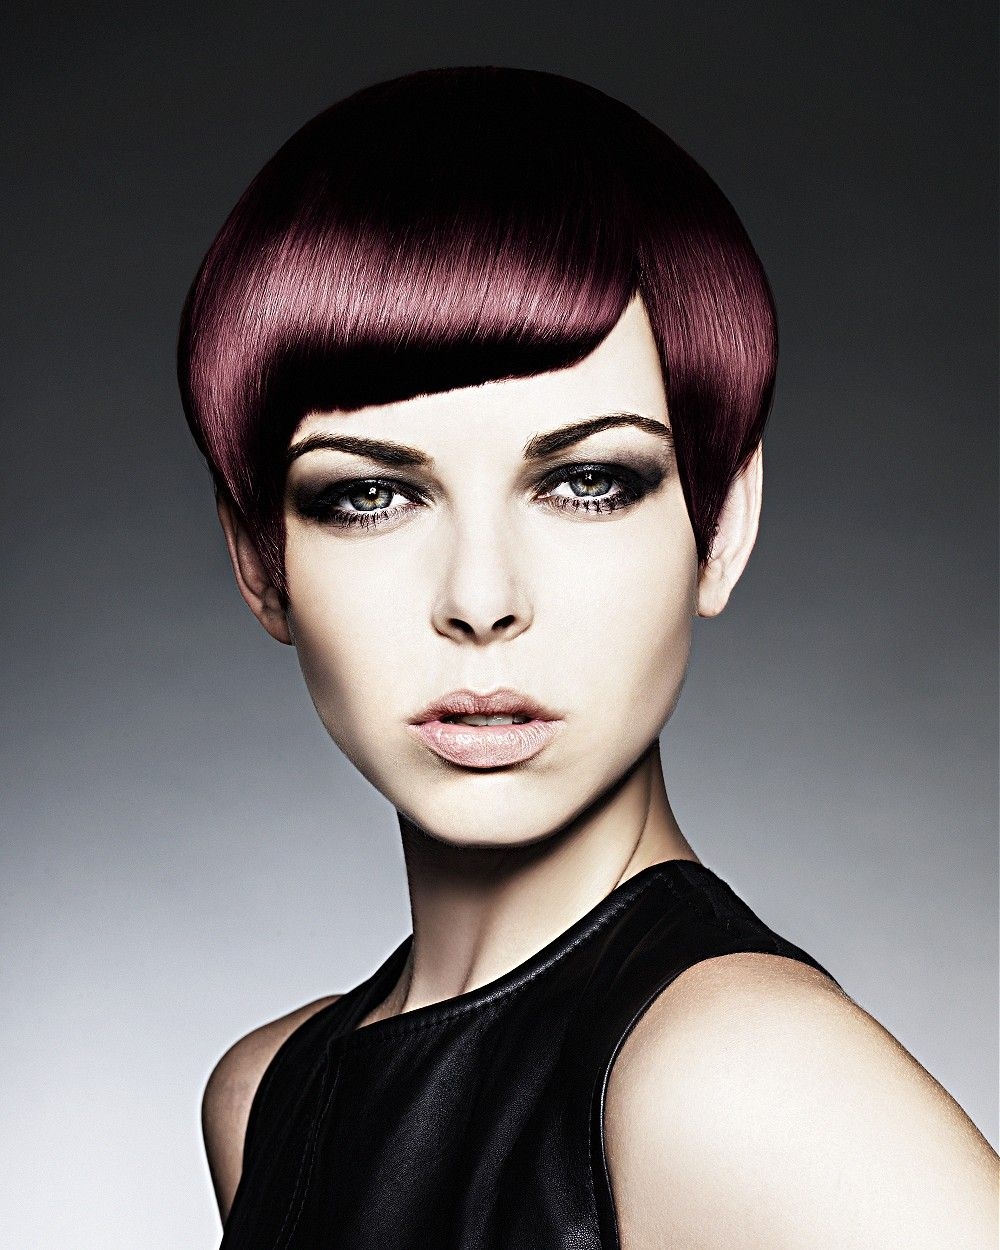 Large image of short brown straight hairstyles provided by hooker